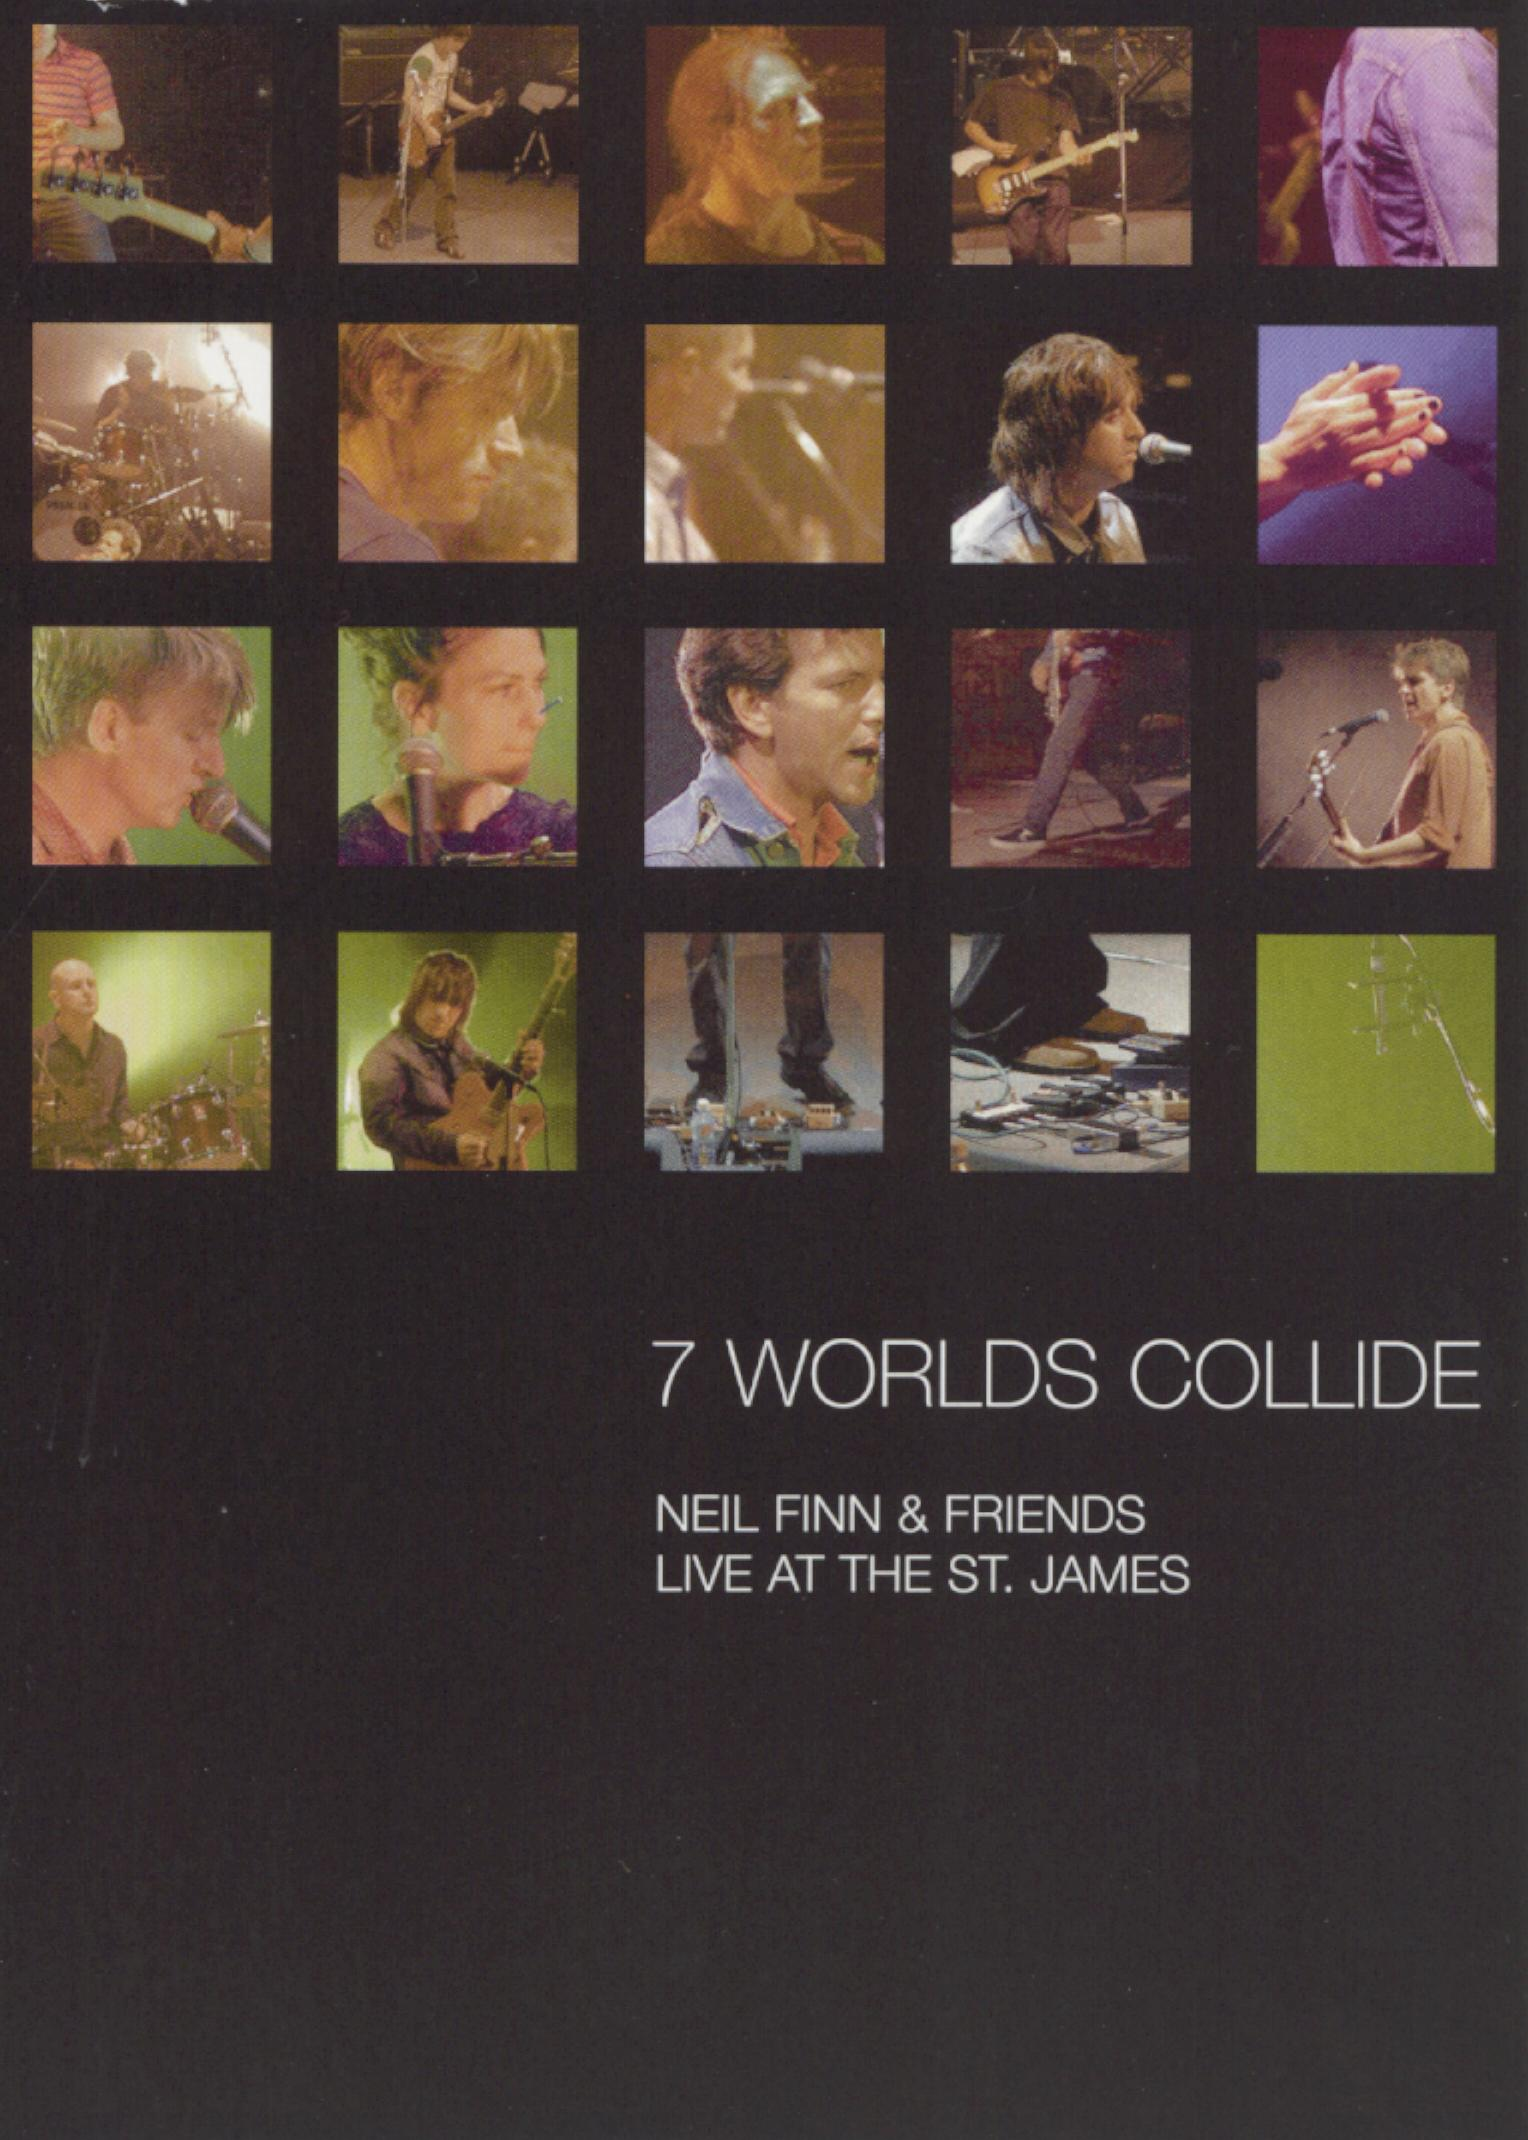 Neil Finn: 7 Worlds Collide - Live at the St. James